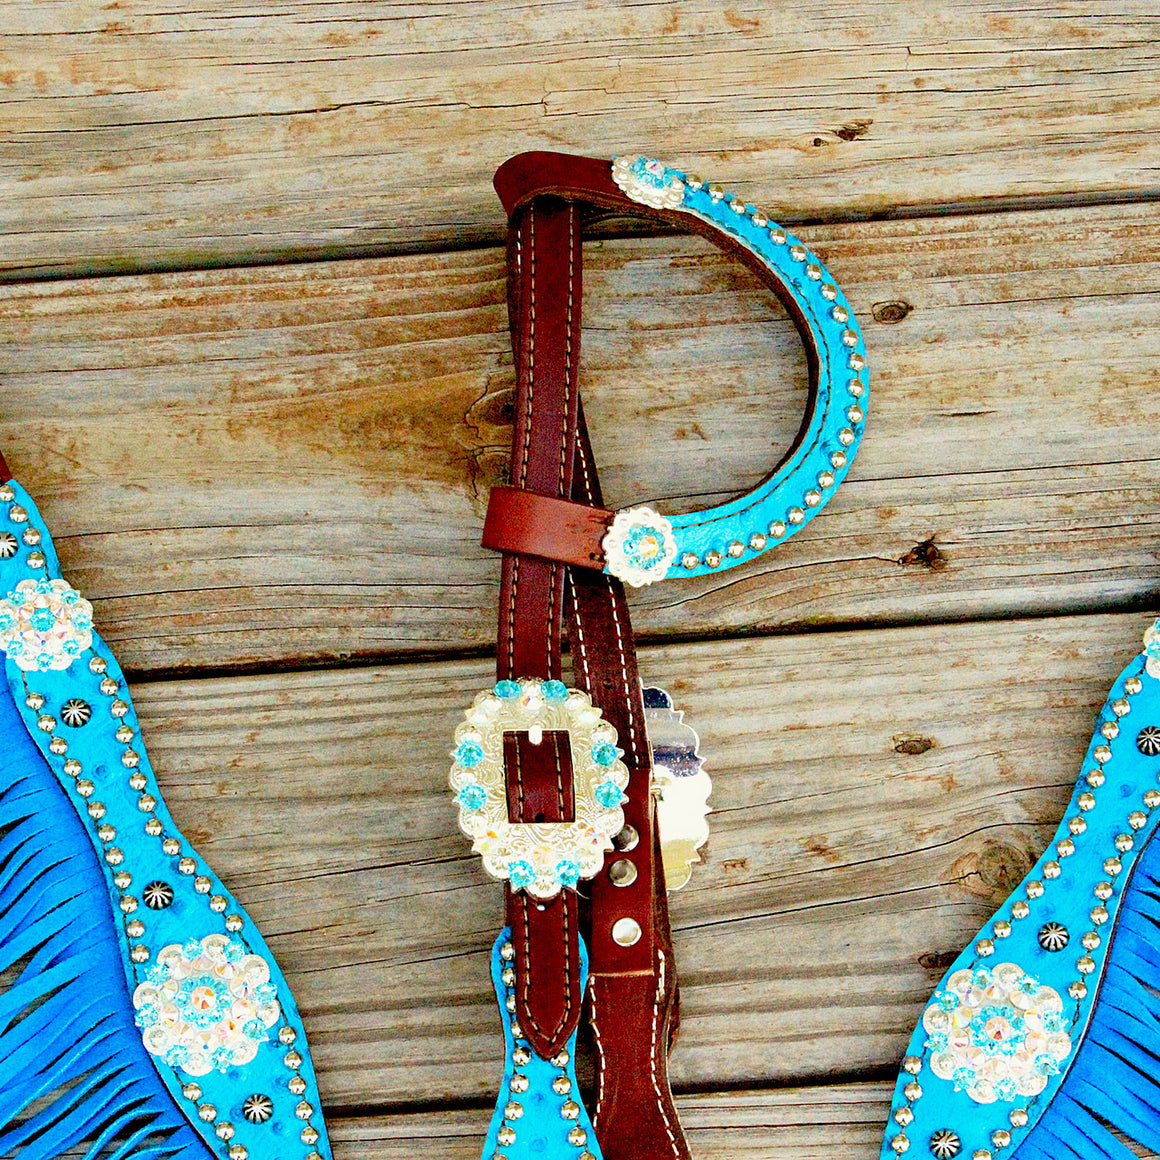 Turquoise Ostrich/Chestnut Leather One Ear Fringe Tack Set w/AB-Turquoise Crystal Rhinestone Conchos